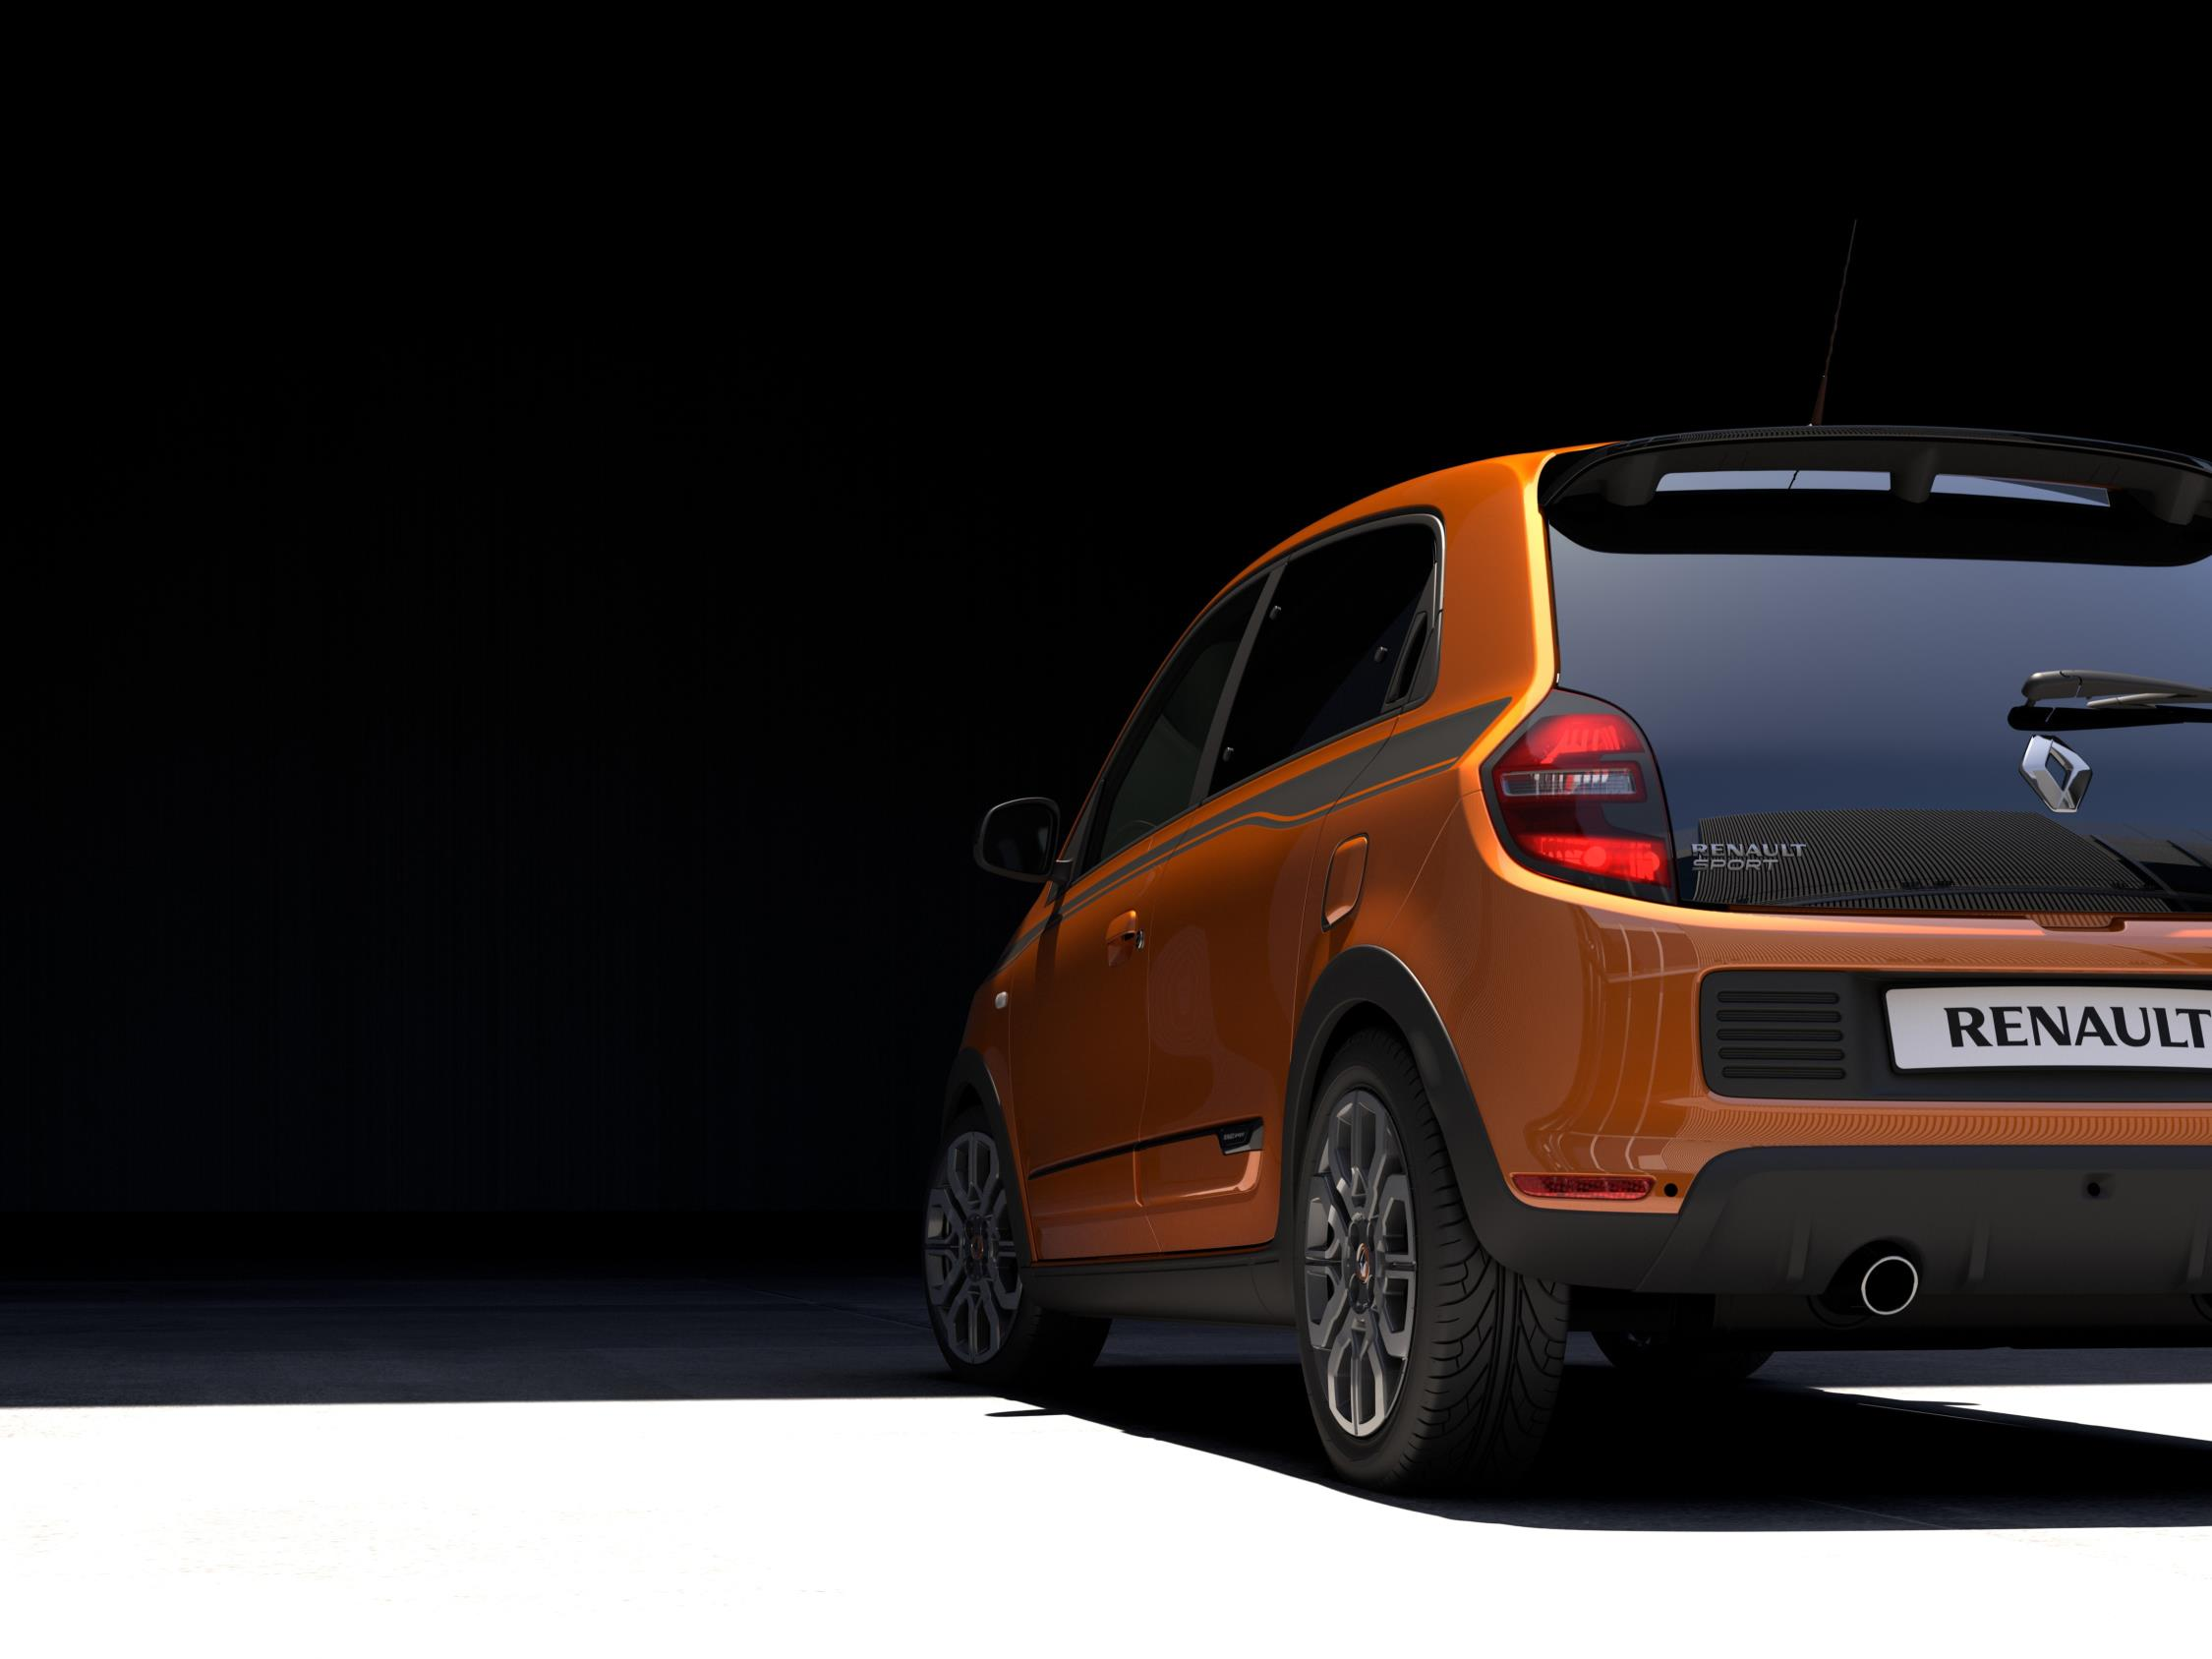 renault twingo gt goes on sale in britain from 13 755 autoevolution. Black Bedroom Furniture Sets. Home Design Ideas